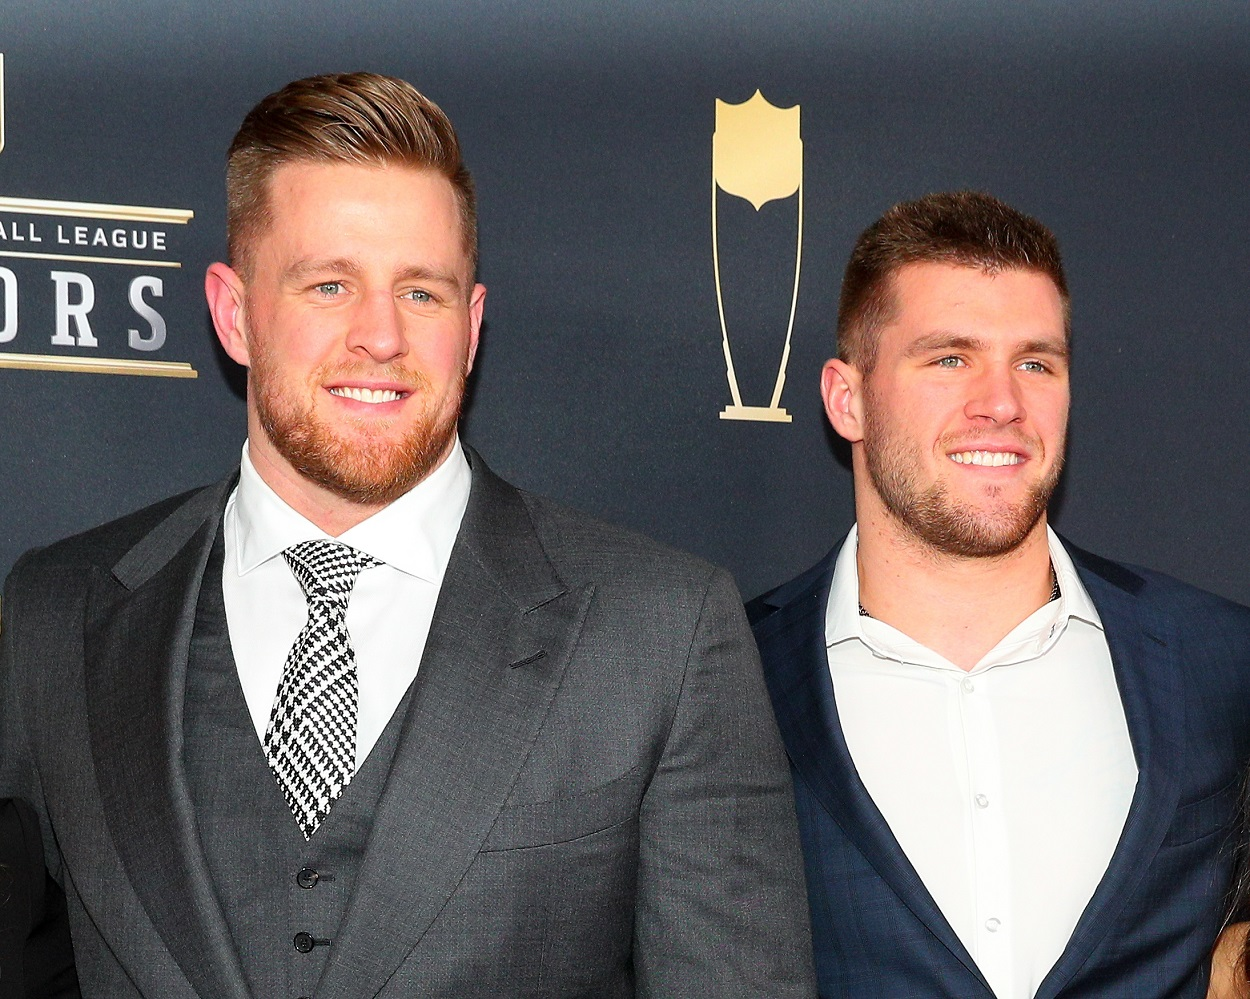 T.J. Watt Hilariously Channels Dwayne 'The Rock' Johnson to Recruit J.J. Watt to the Pittsburgh Steelers